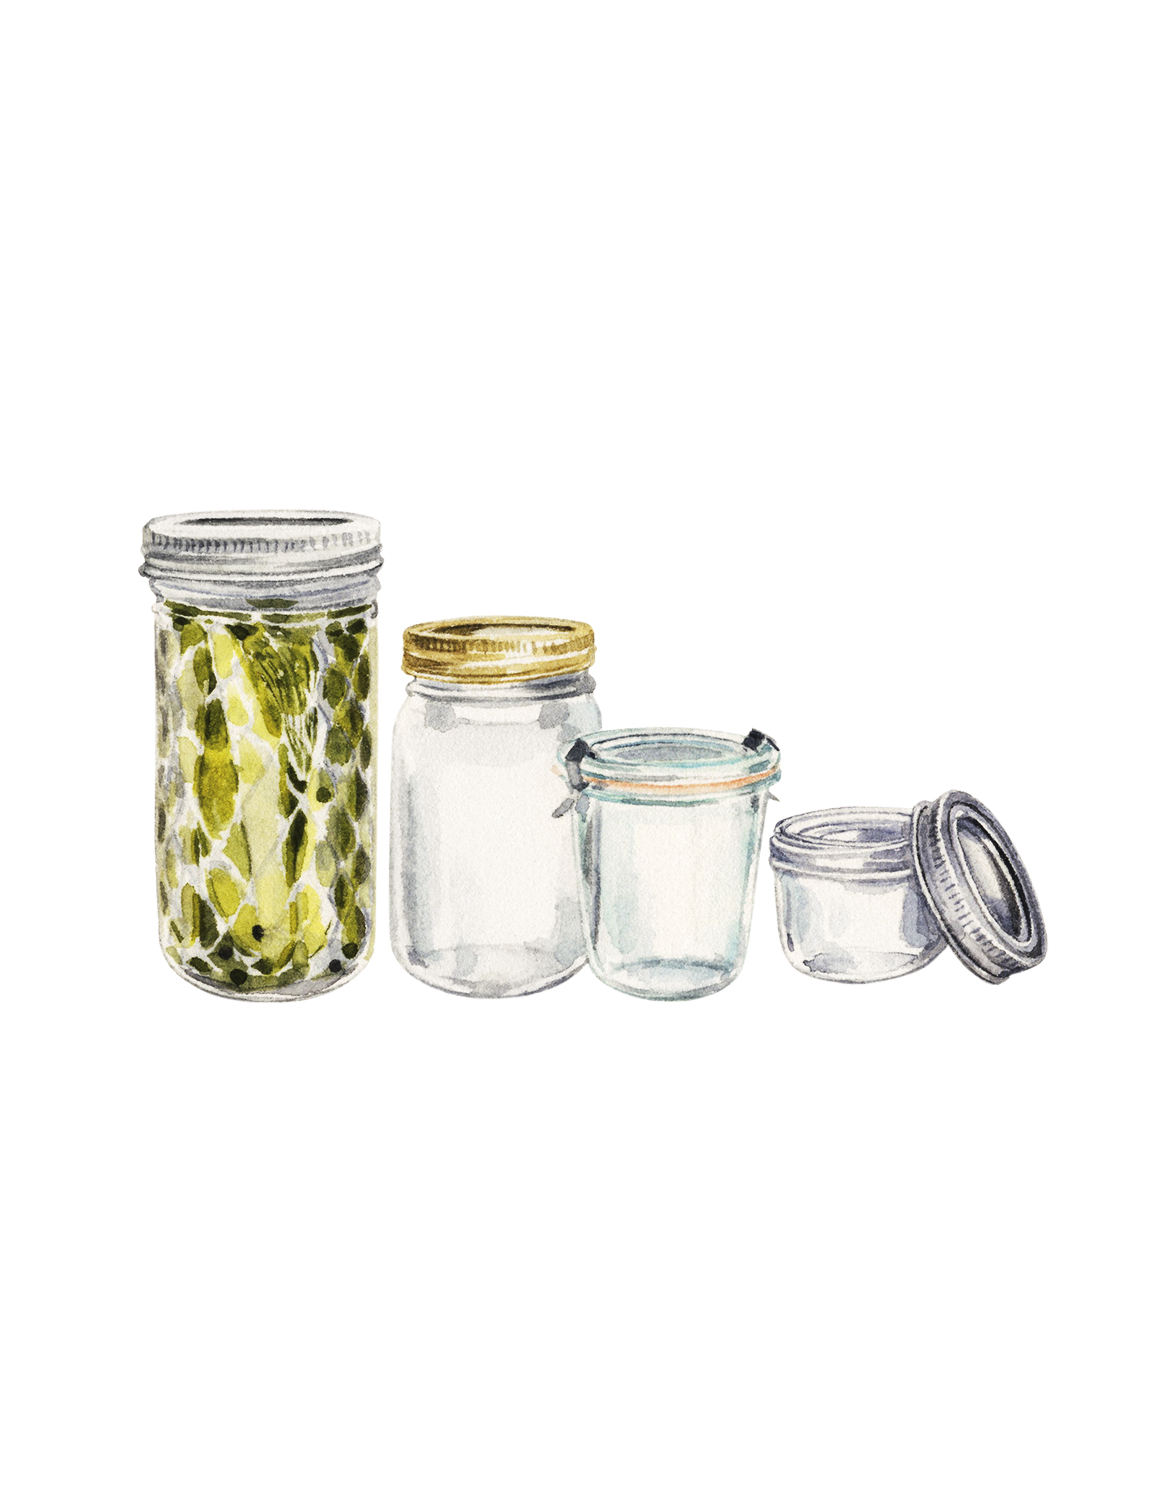 How to Prep Jars for Packing Gifts